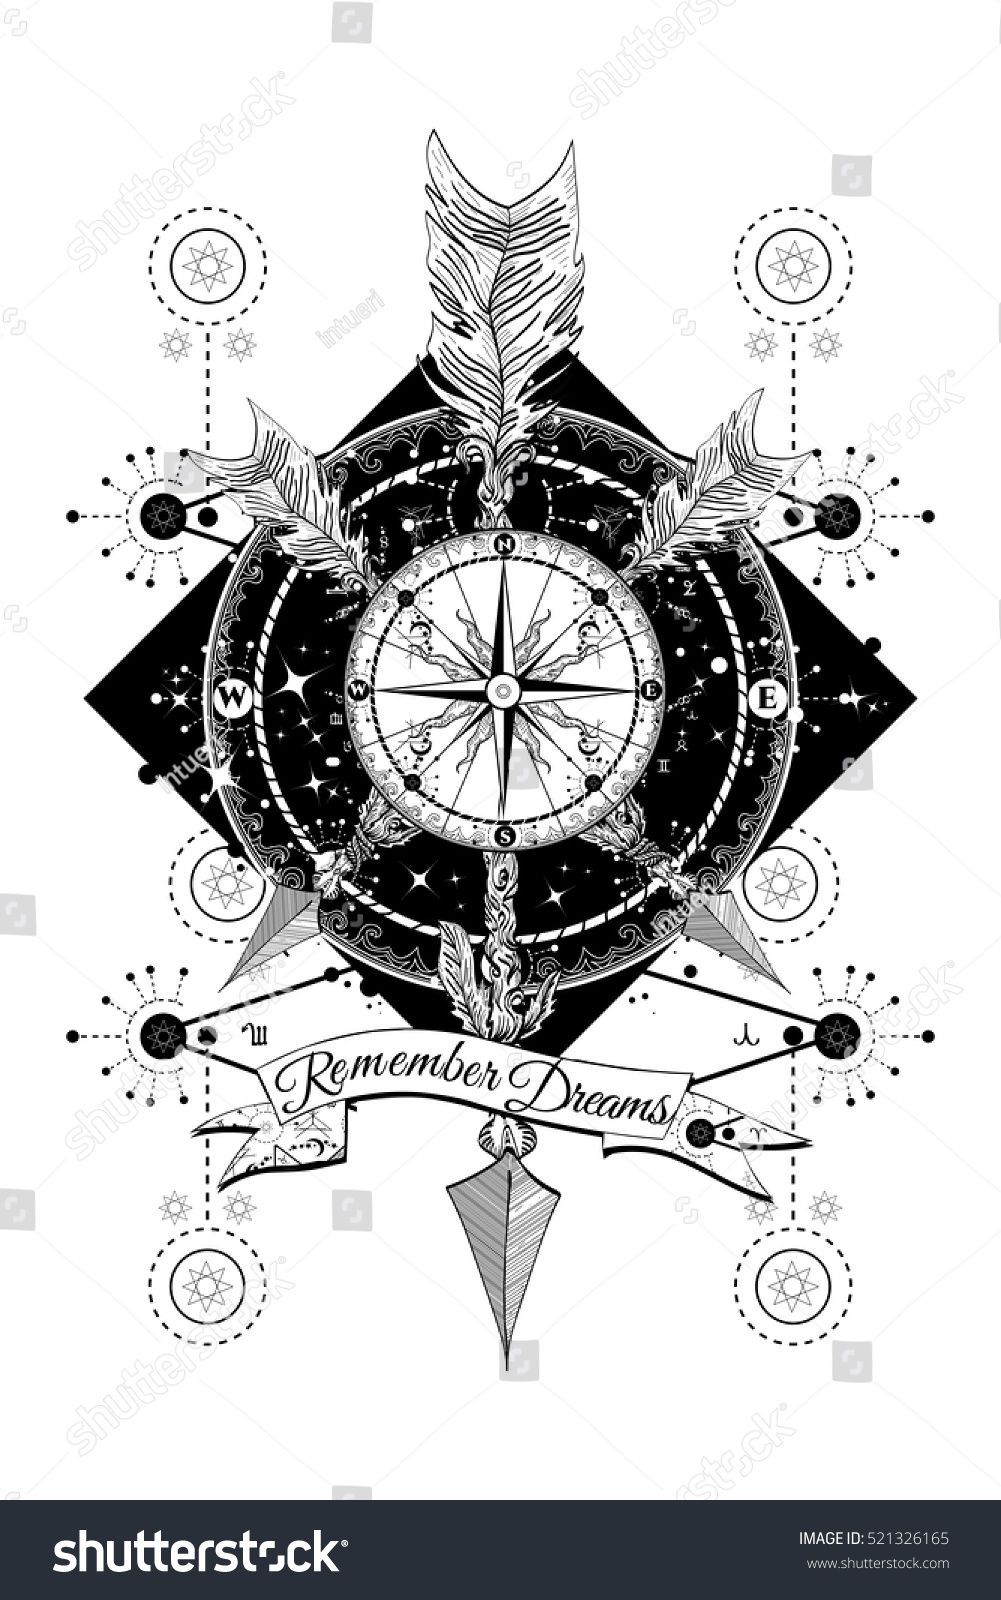 Rose Compass And Crossed Arrows Tattoo Boho Style Adventure